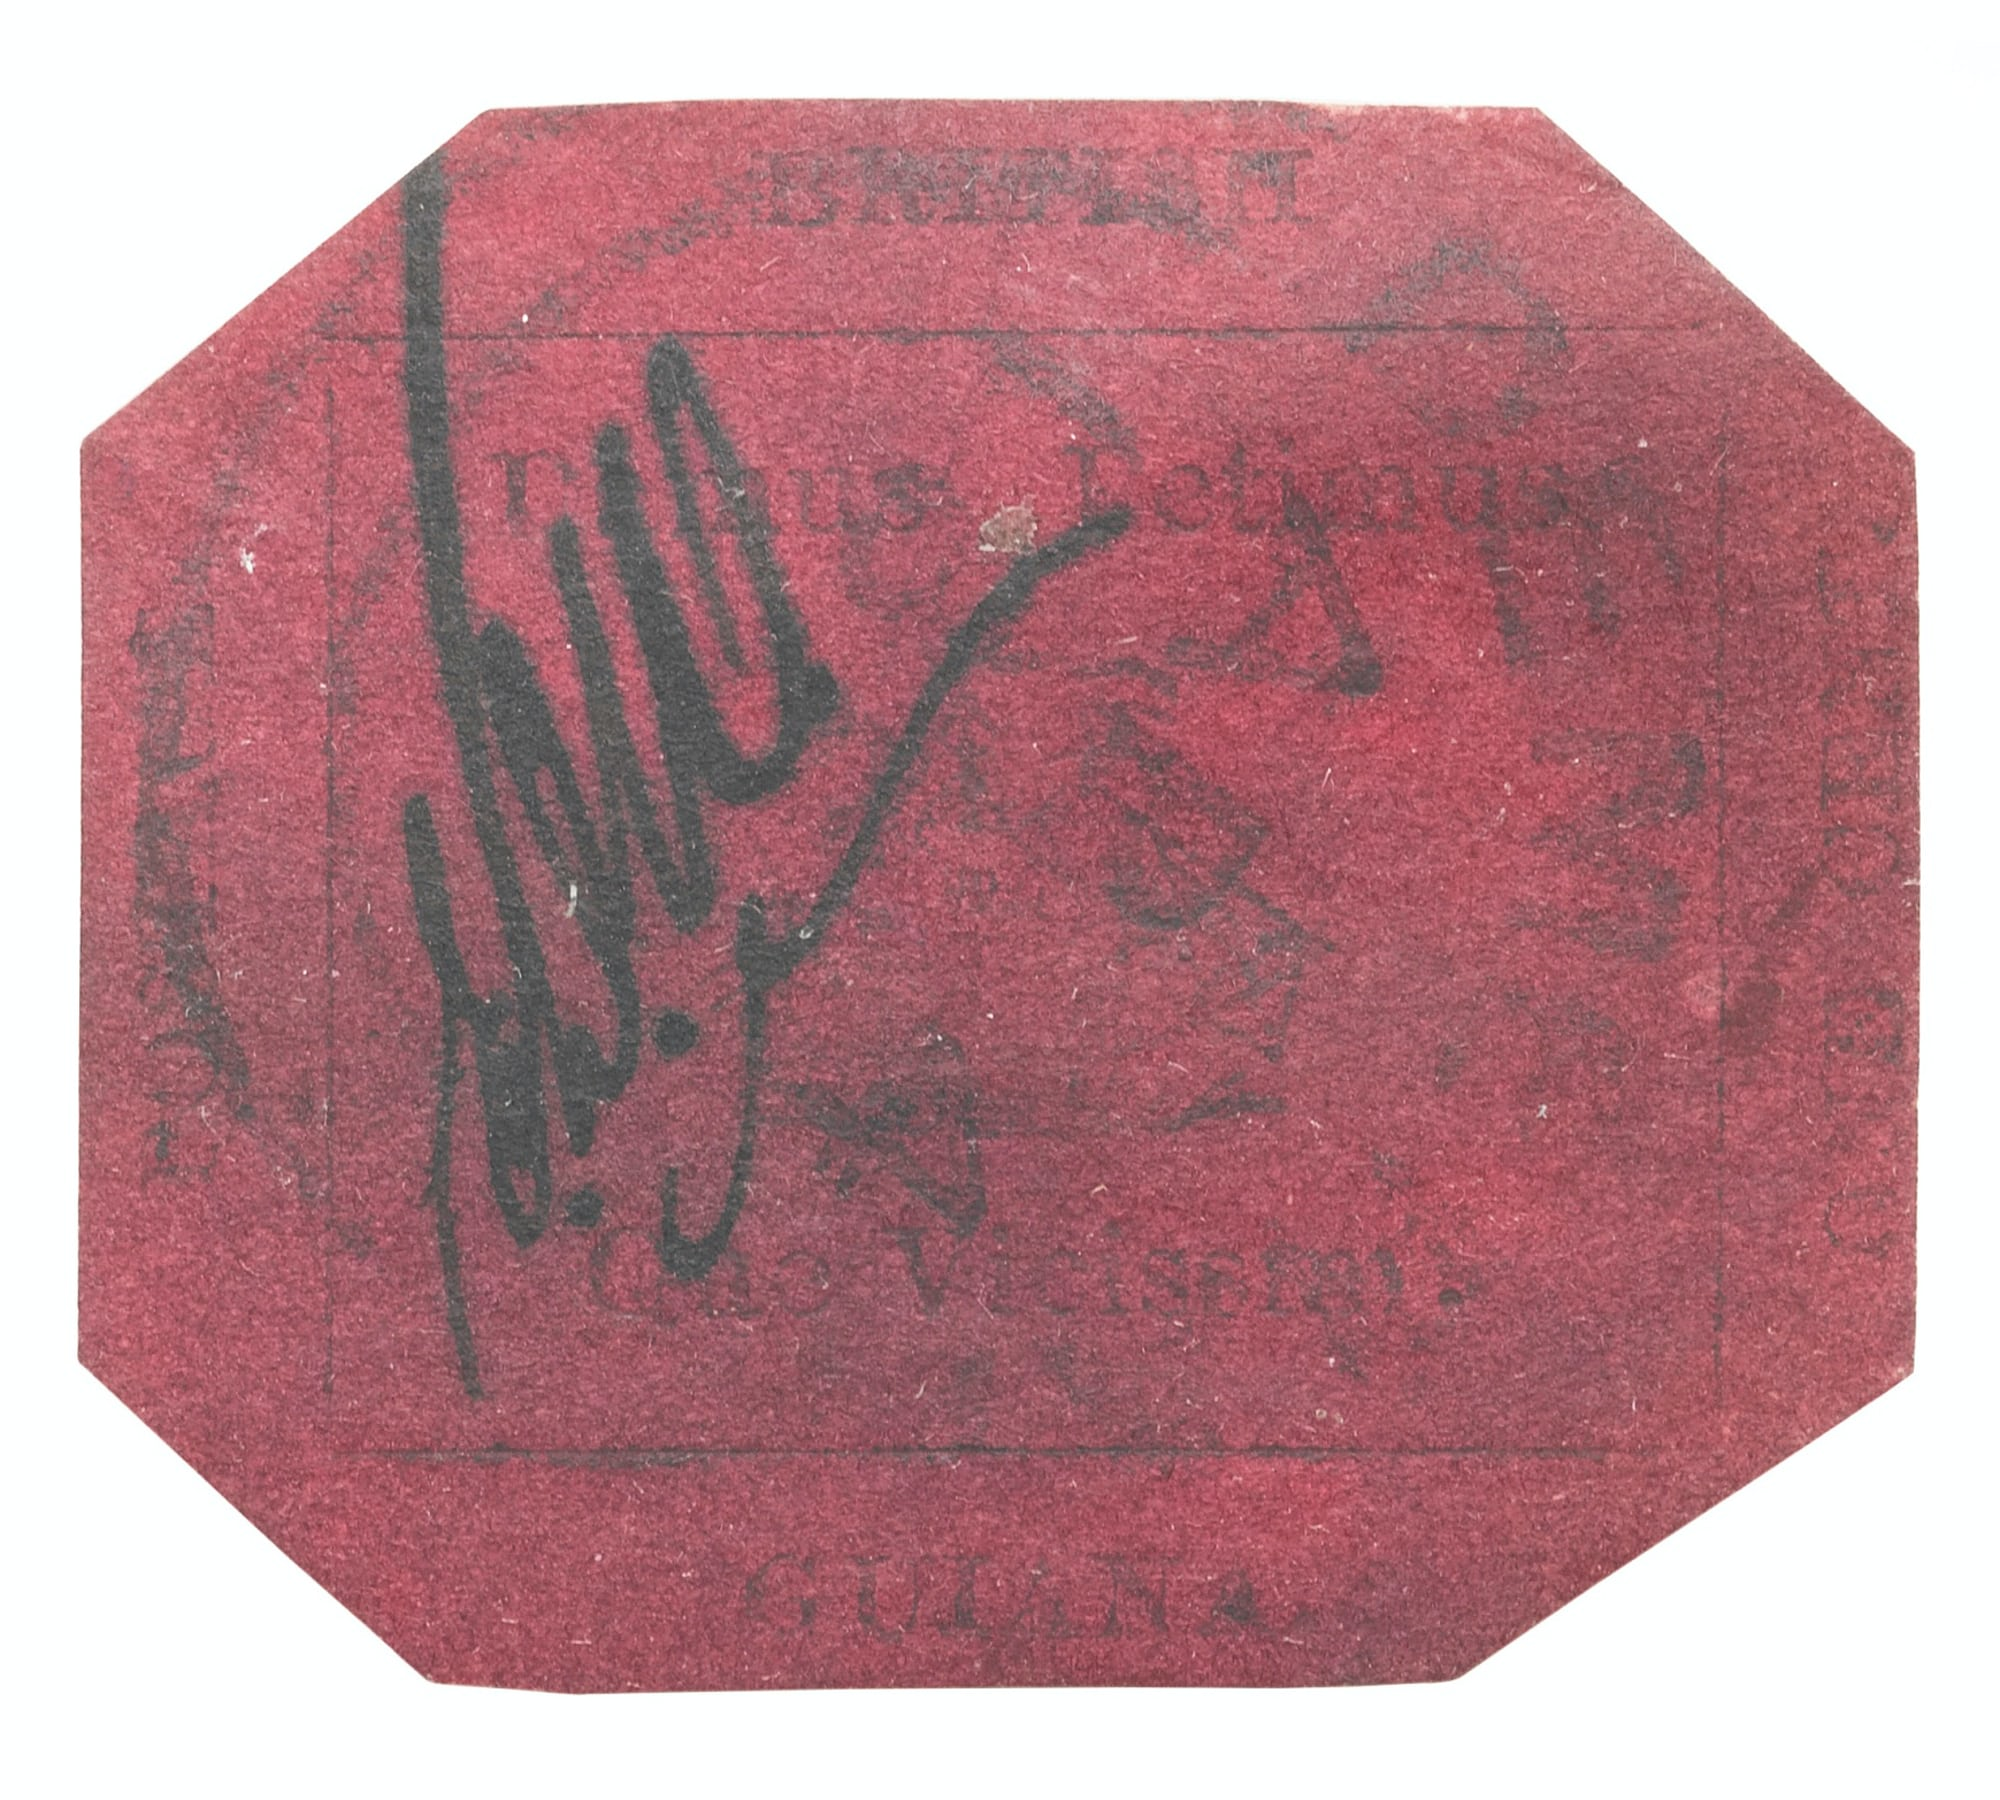 British Guiana One Cent Magenta Editorial: Price, Value, And The Strange Case Of The Nine Million Dollar Postage Stamp Editorial: Price, Value, And The Strange Case Of The Nine Million Dollar Postage Stamp British Guiana 13